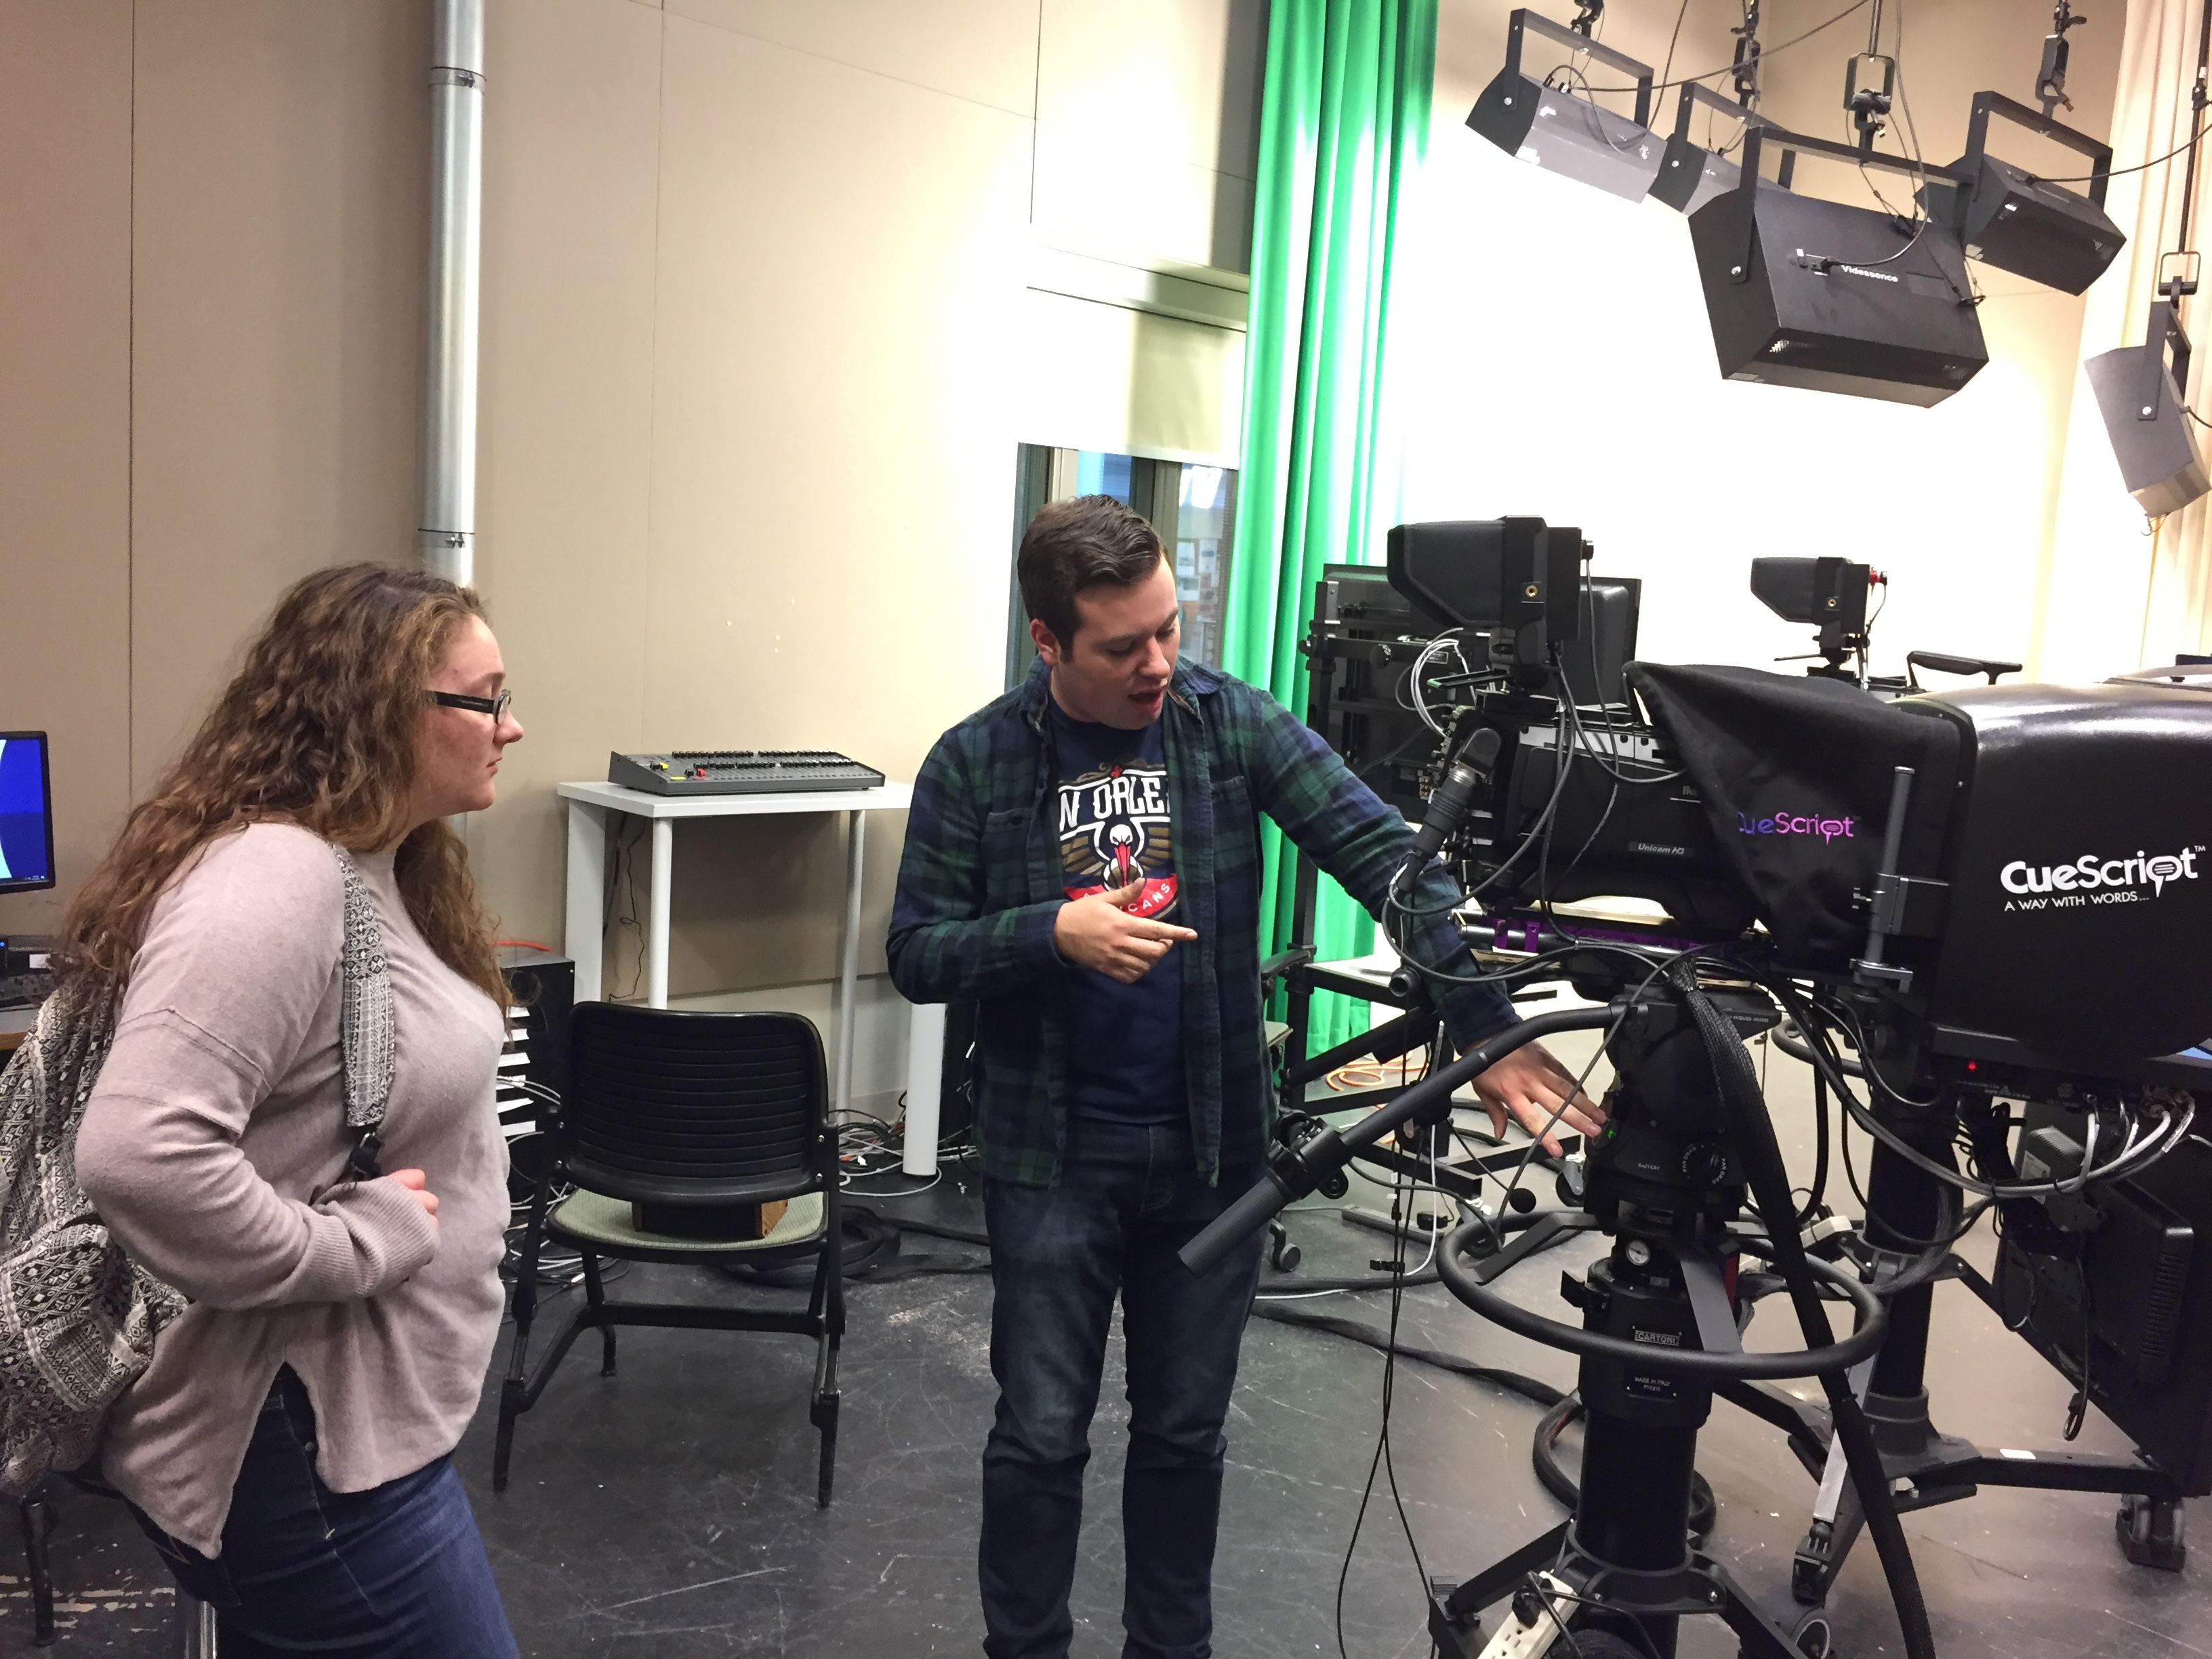 Ryan Berger '18, shows a crew member how to use our new HD cameras